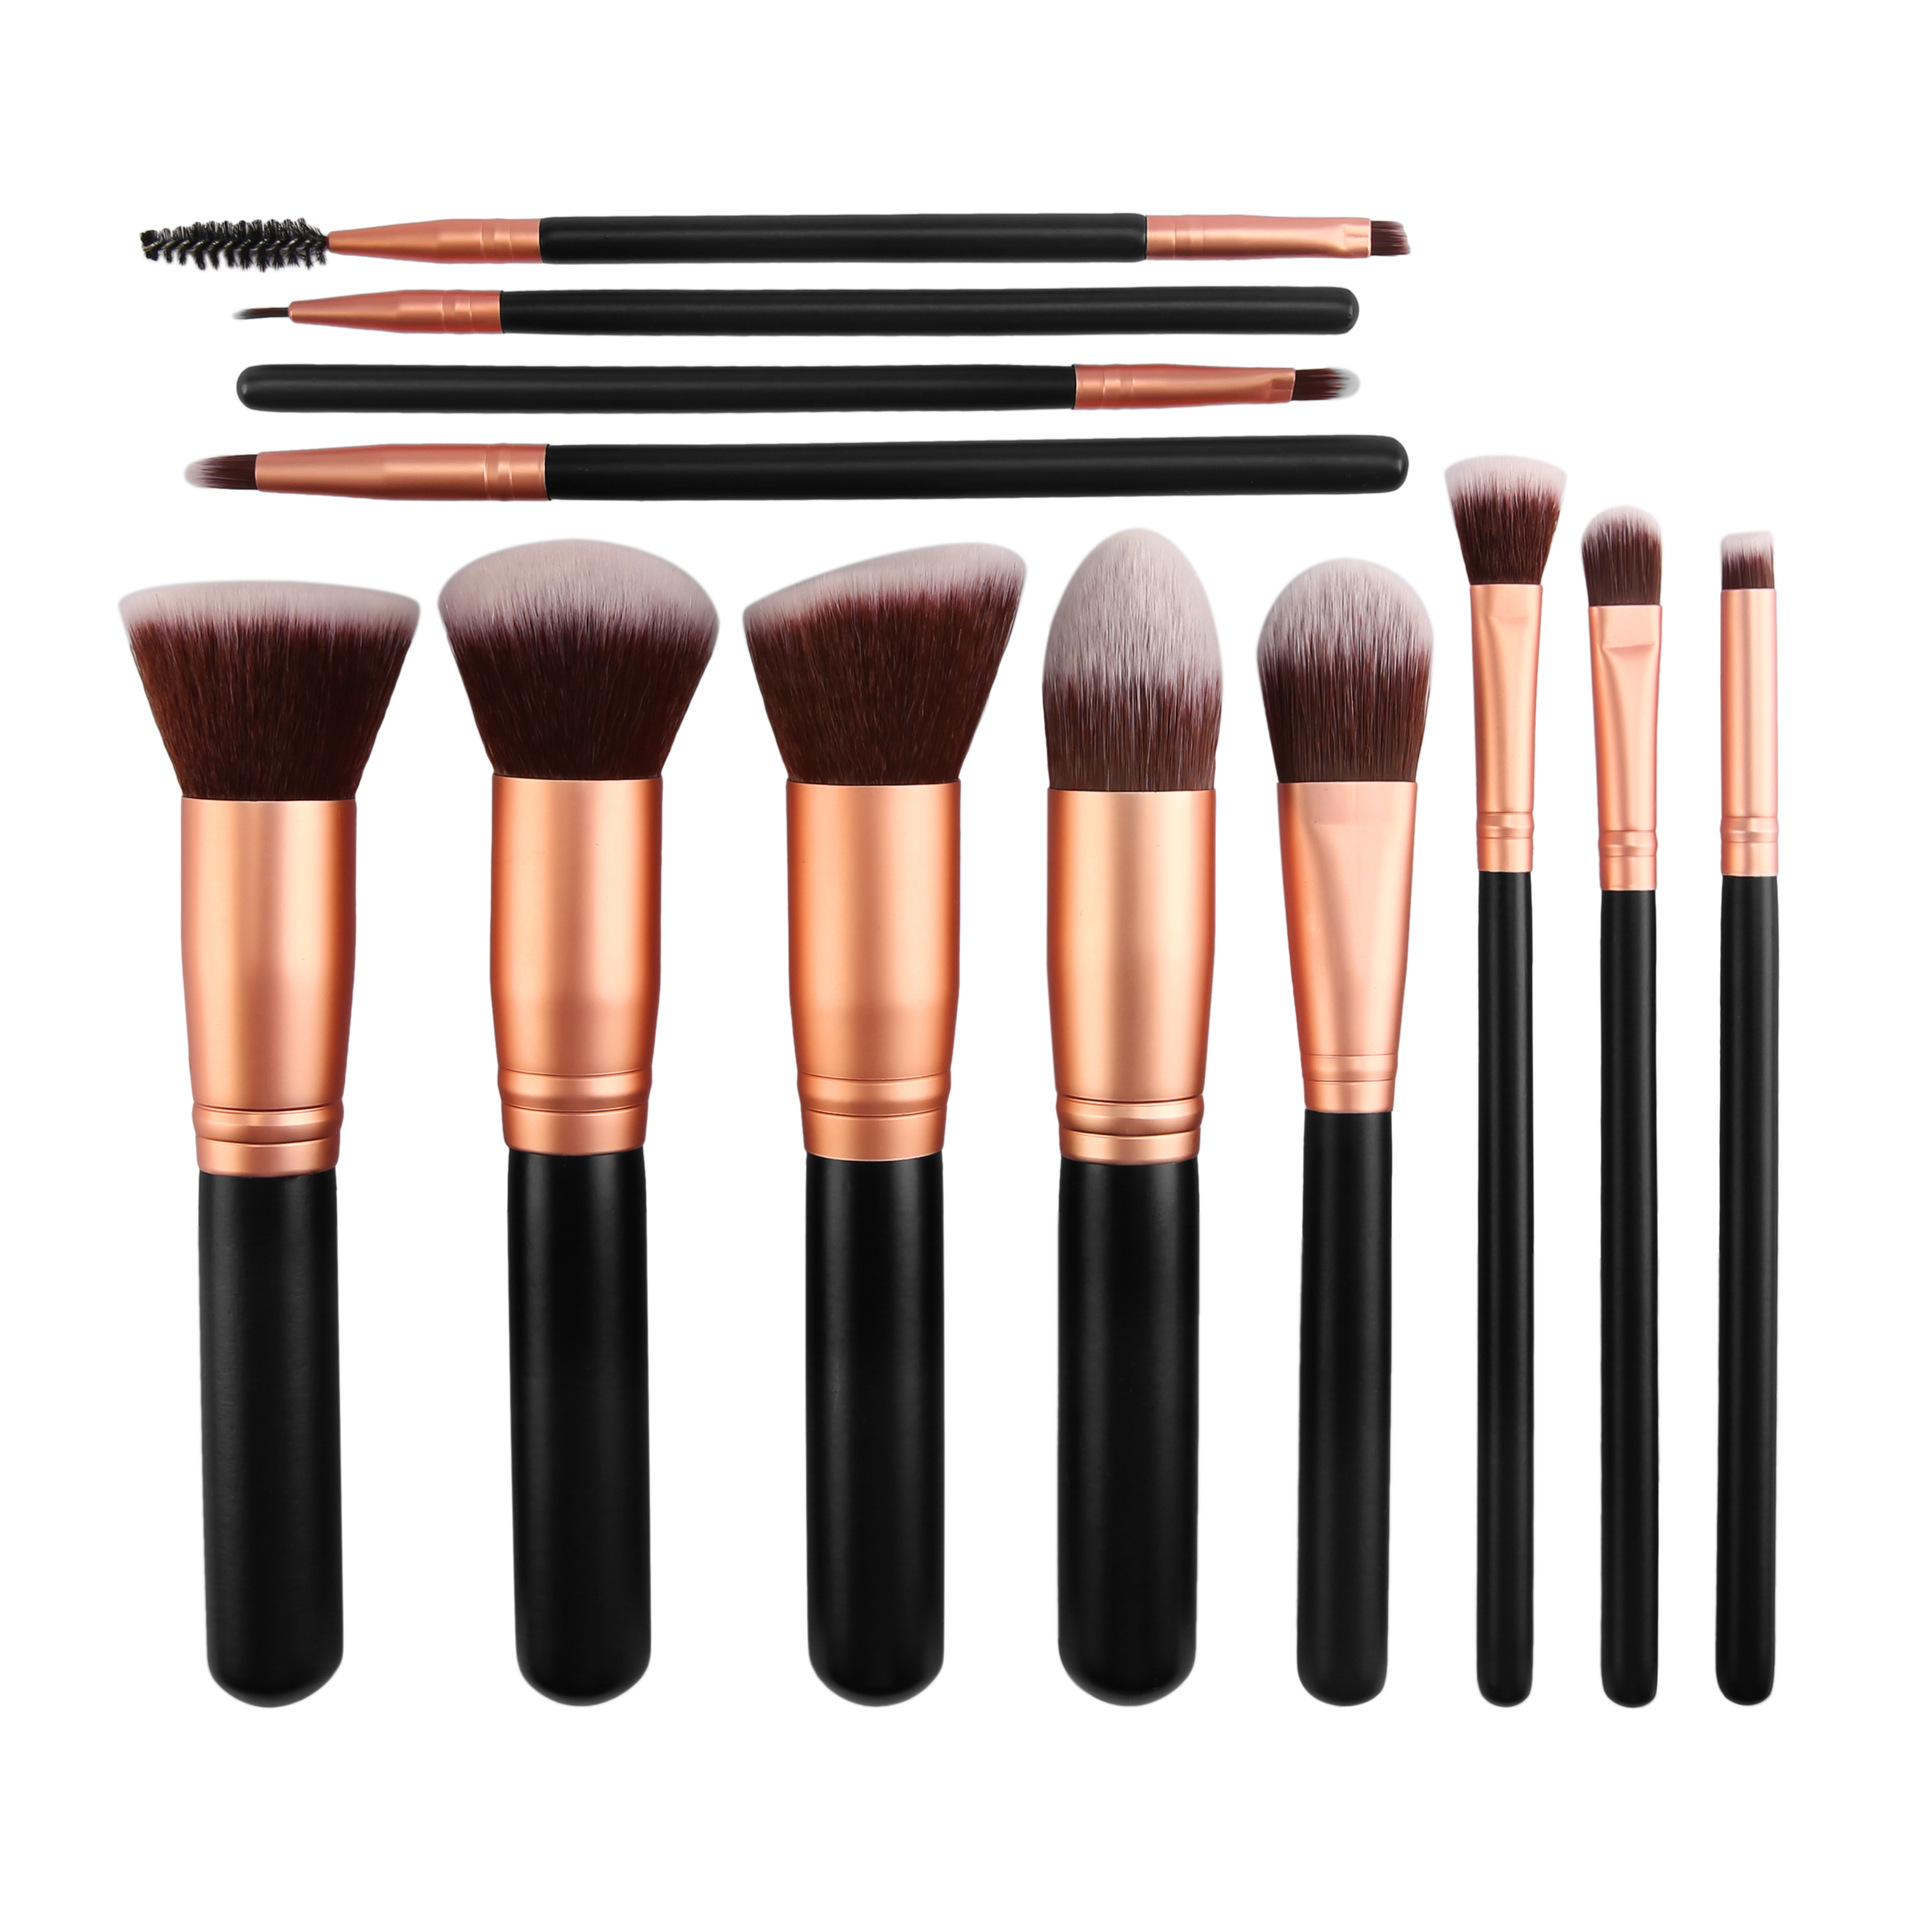 Neue 2019 Trend Heiße Beliebte Vegan Holz Make-Up Pinsel Private Label 12PCS Schönheit Bürsten Make-Up Erröten Kontur Machen Up pinsel